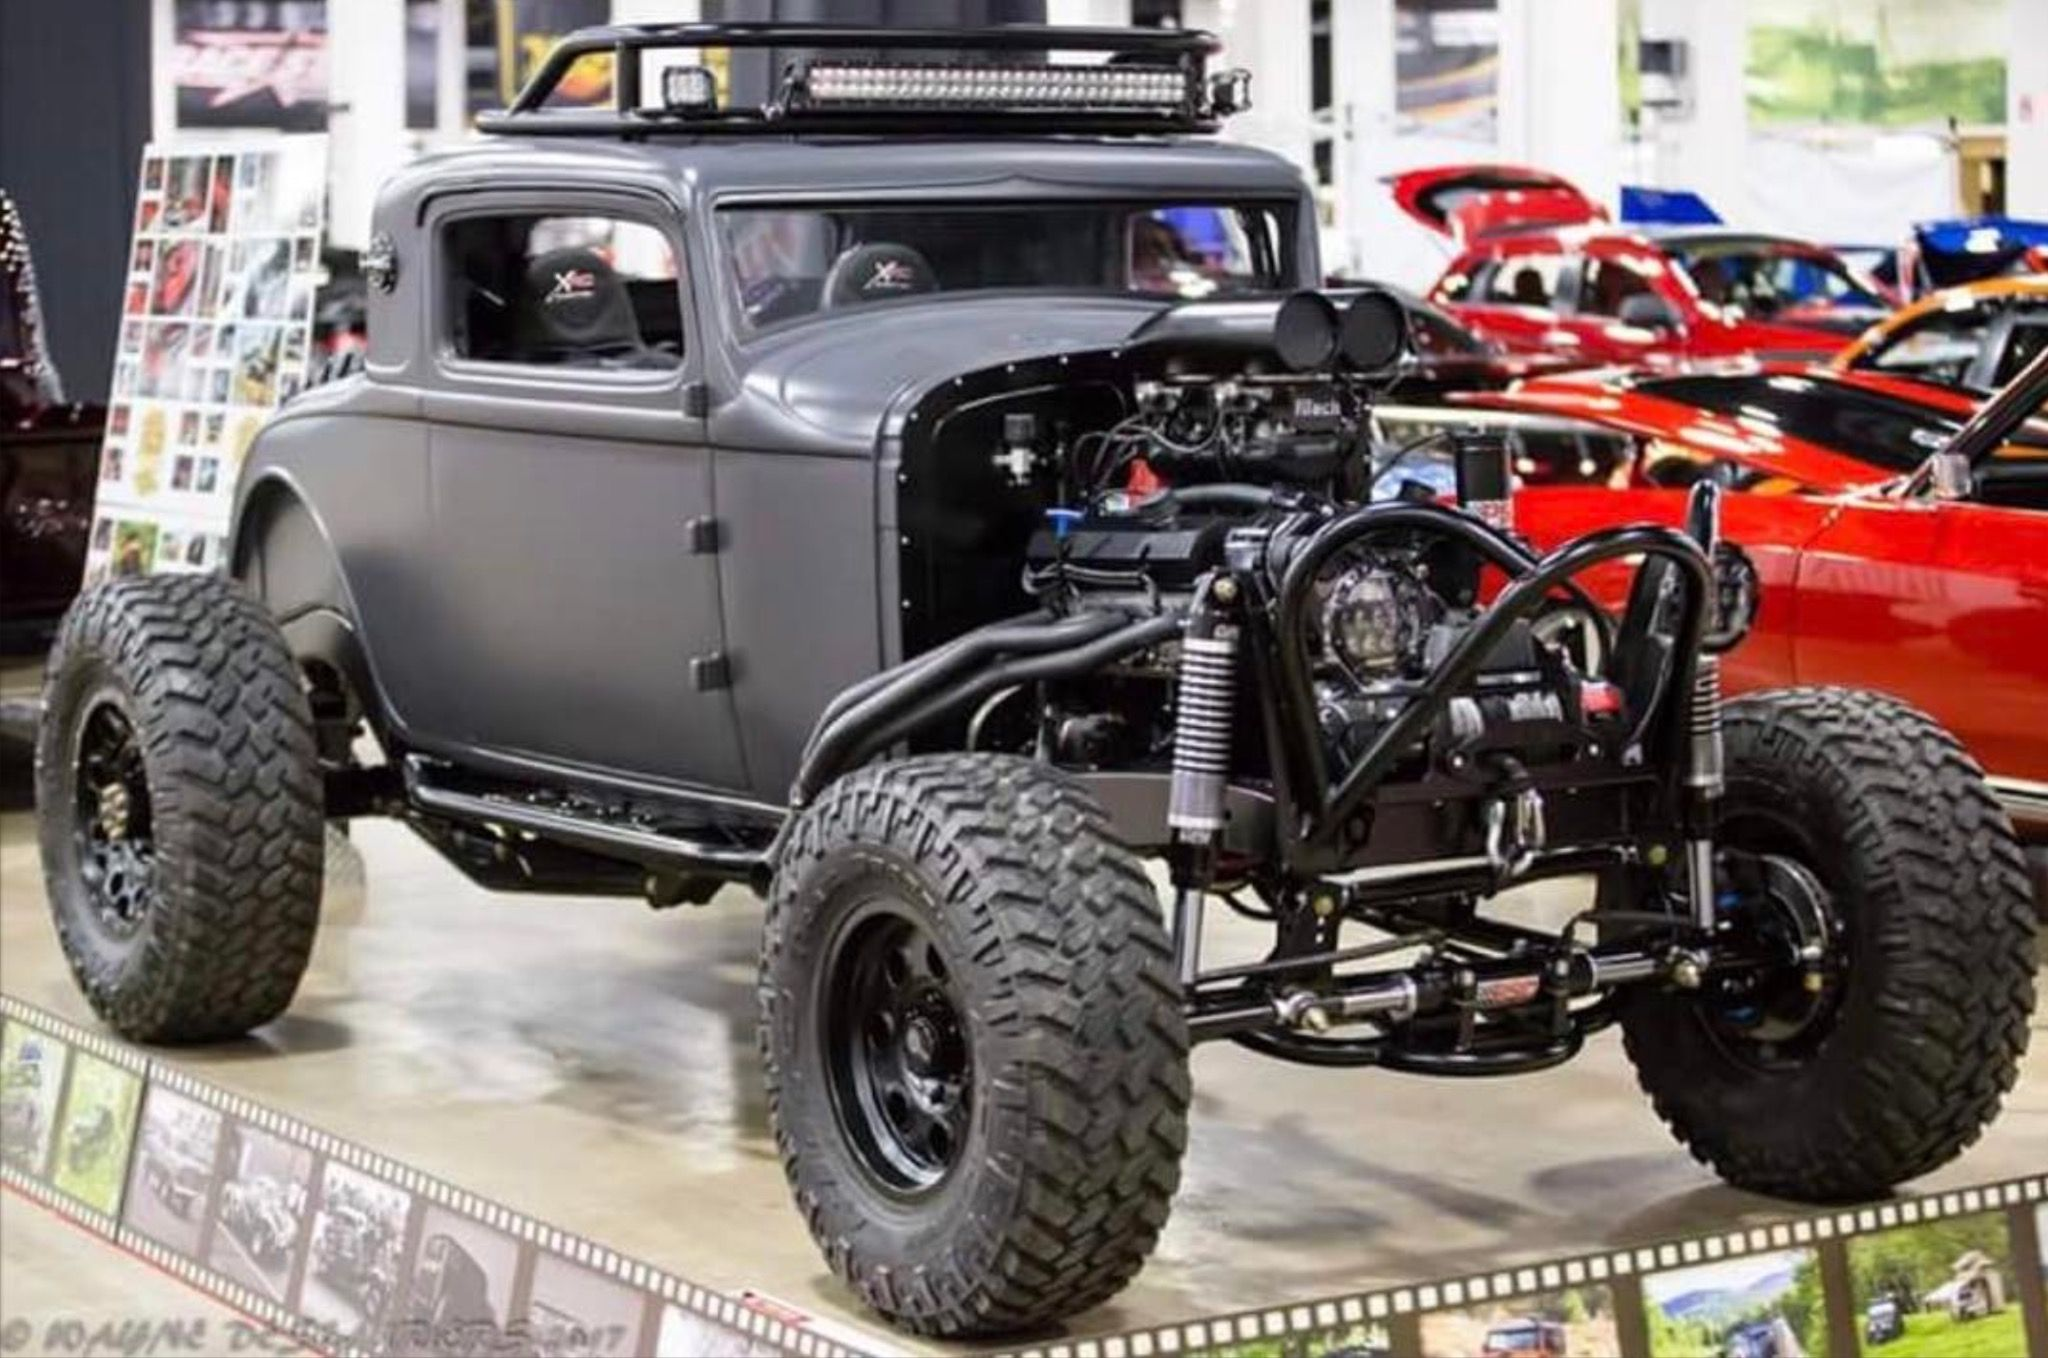 Pin by Colton Black on Rats | Pinterest | Rats, Cars and Vehicle